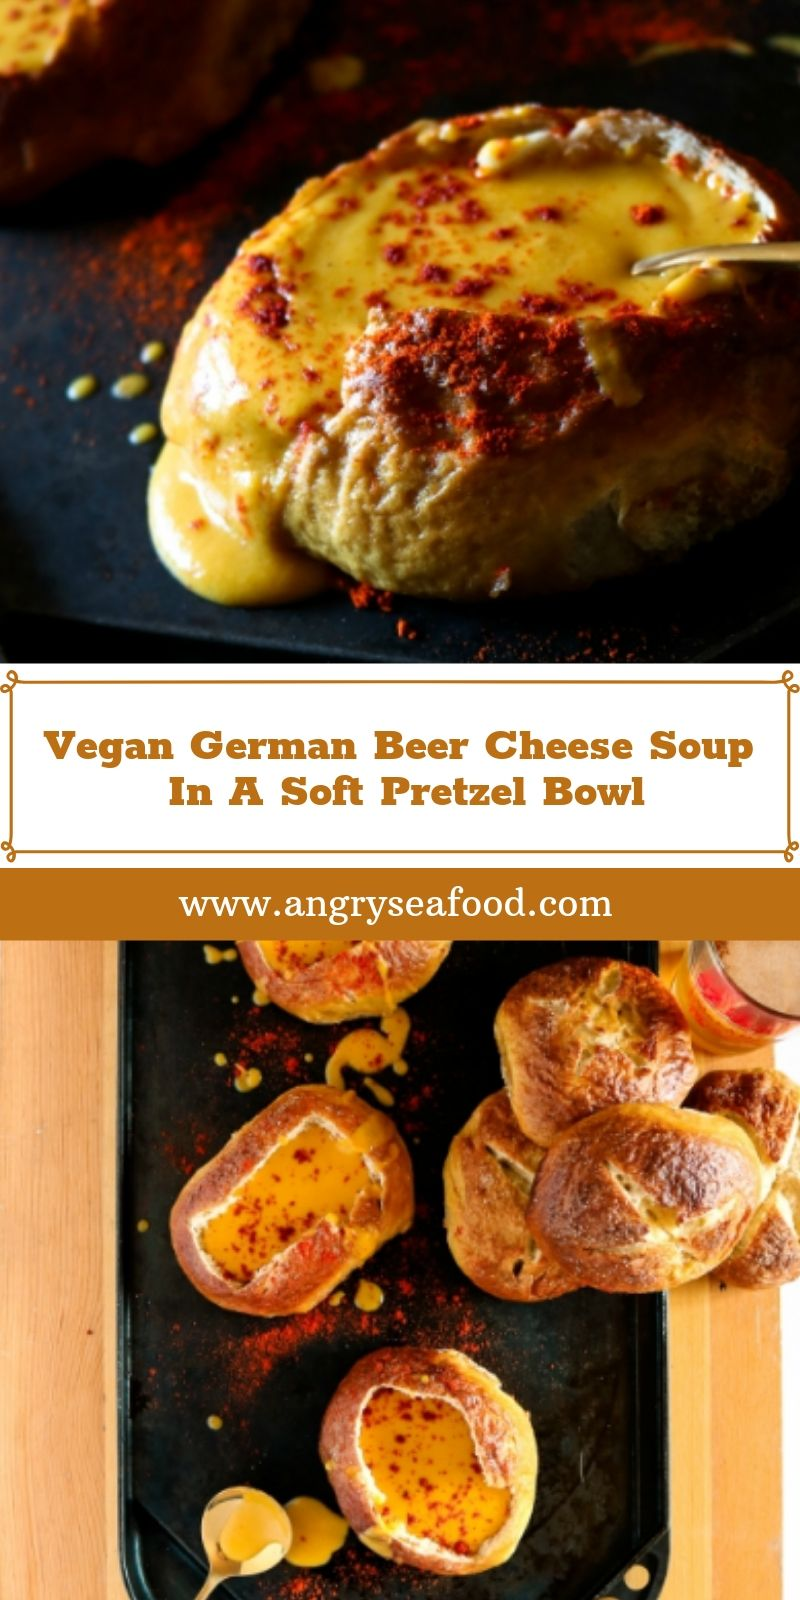 Vegan German Beer Cheese Soup In A Soft Pretzel Bowl